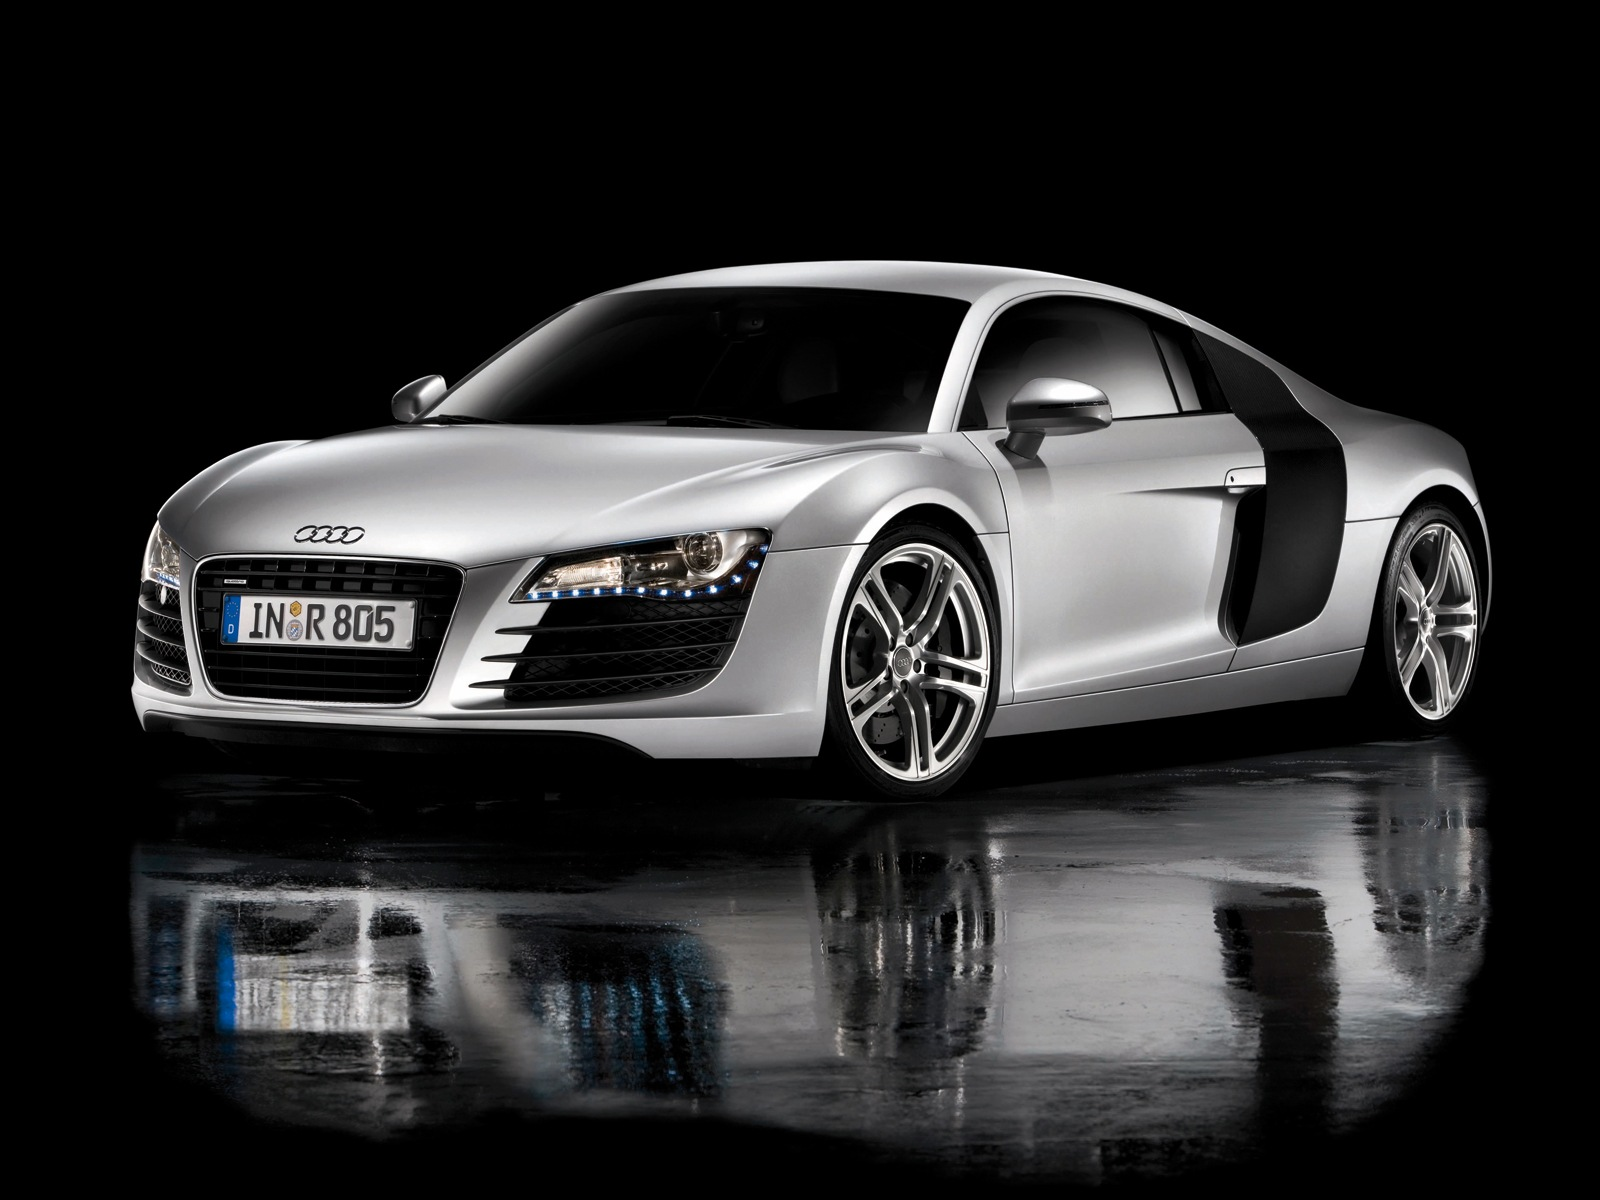 Cars Audi Roads R8 White V10 Wallpaper Allwallpaper In: World Of Cars: Audi R8 Images